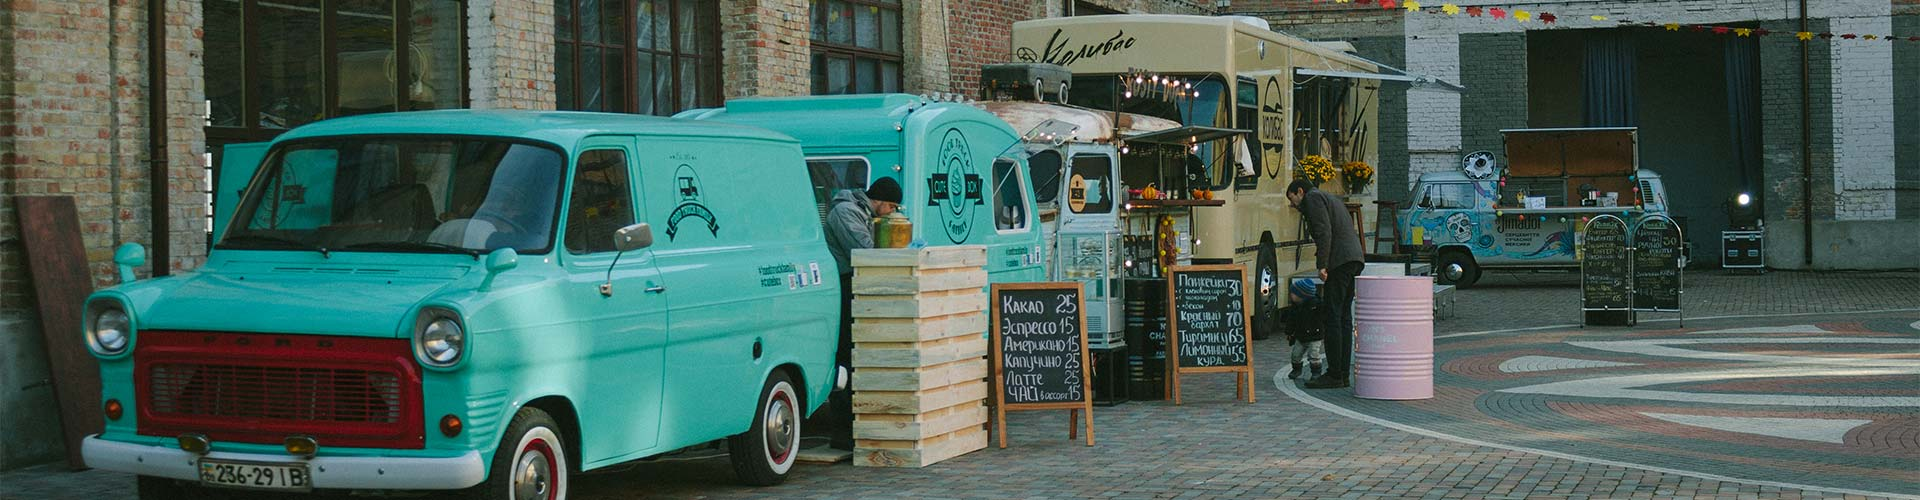 Food Truck Supply Chain Business